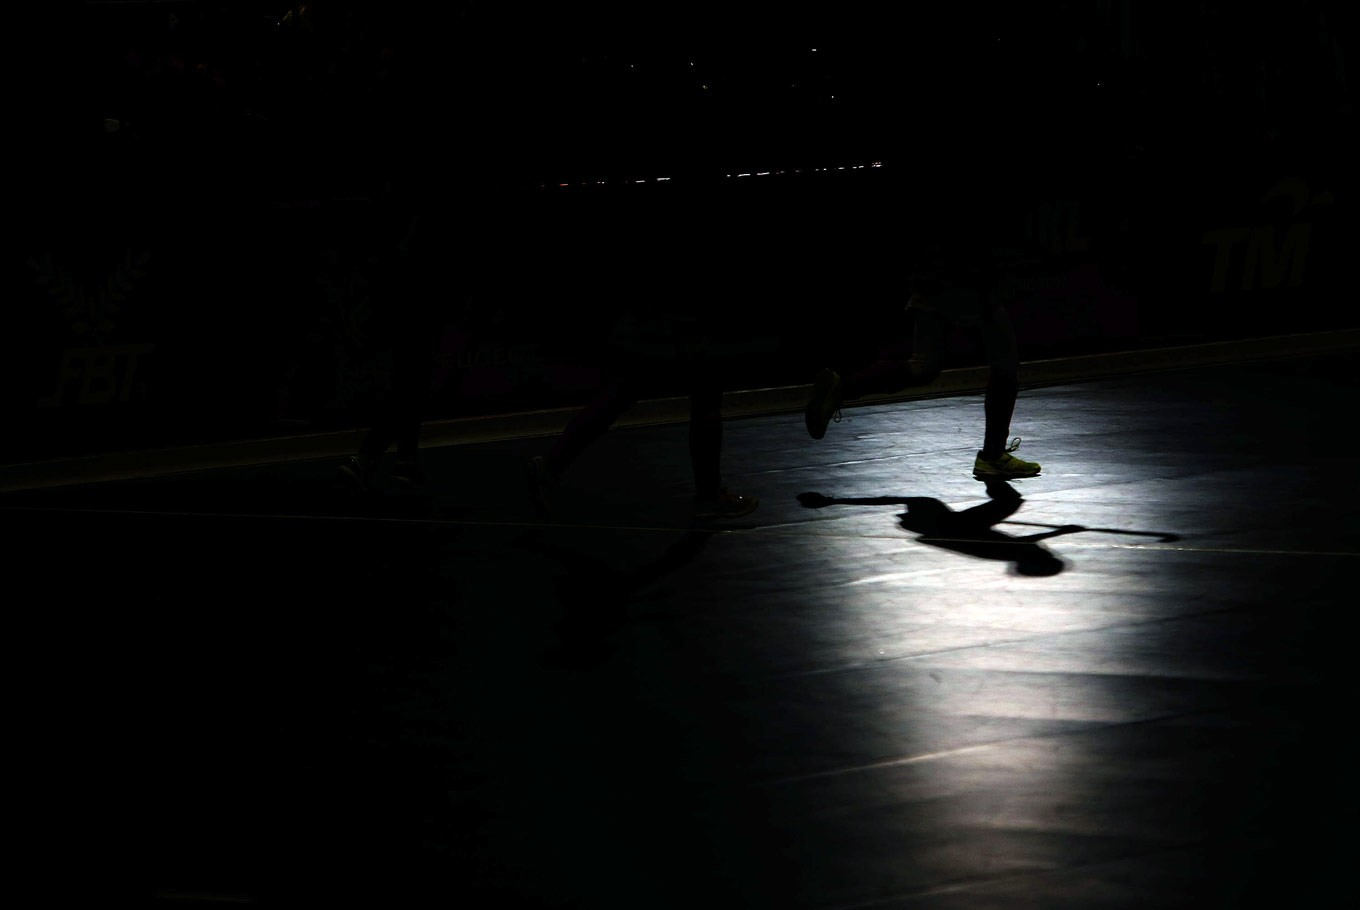 Into the light: The shadow of Ika Oktavianti, an Indonesian indoor hockey player, can be seen as she and her teammates compete against Thailand during the 29th SEA Games women's indoor hockey match at MITEC, Kuala Lumpur. Indonesia's indoor hockey players had secured two silver medals as of Monday.